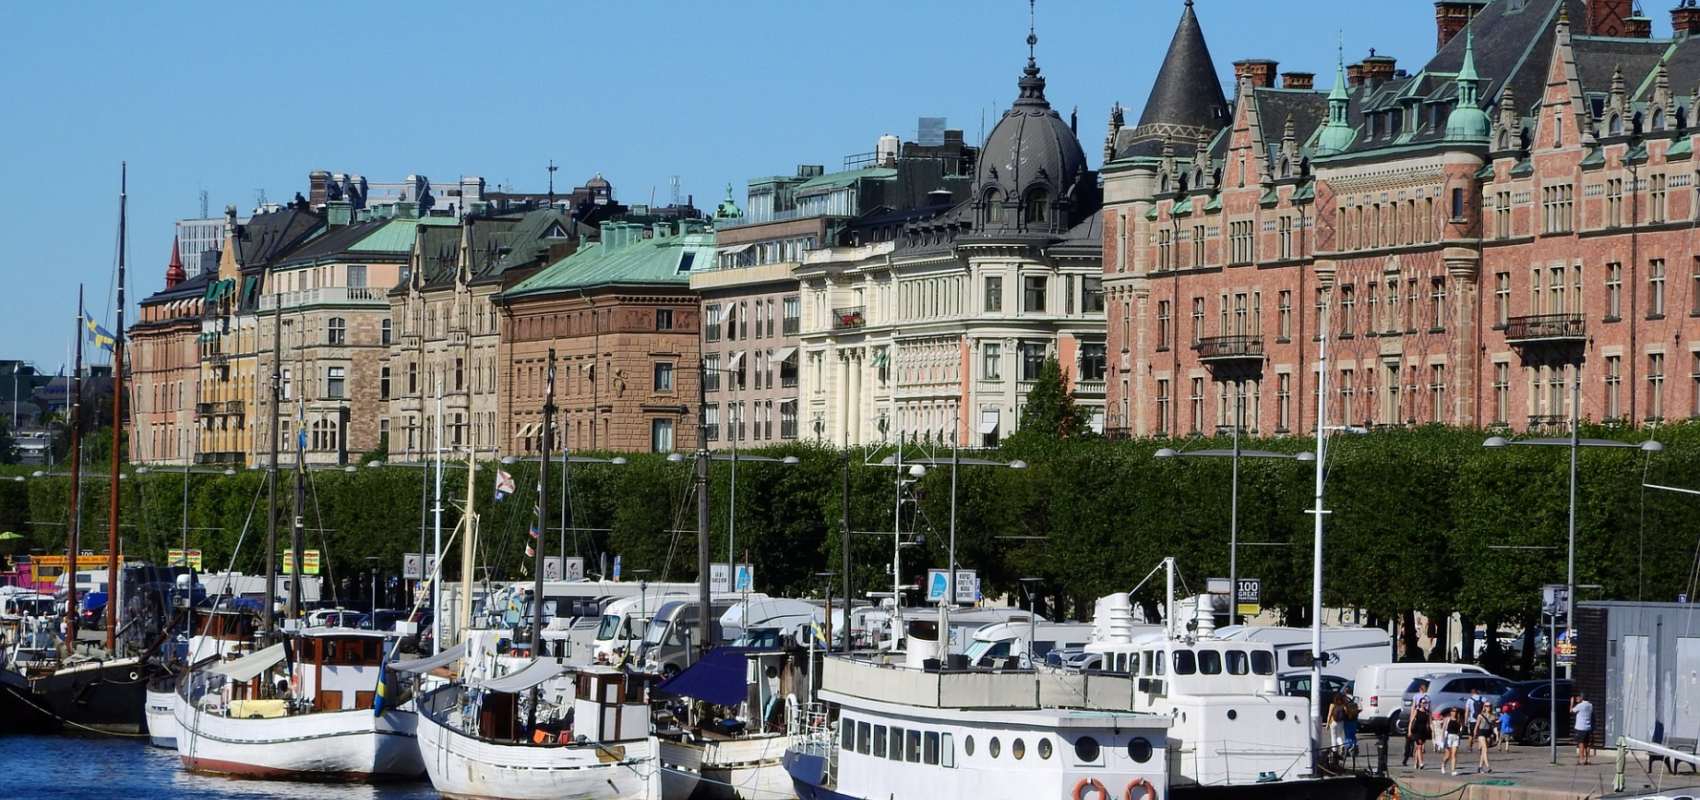 Boats docked in Stockholm